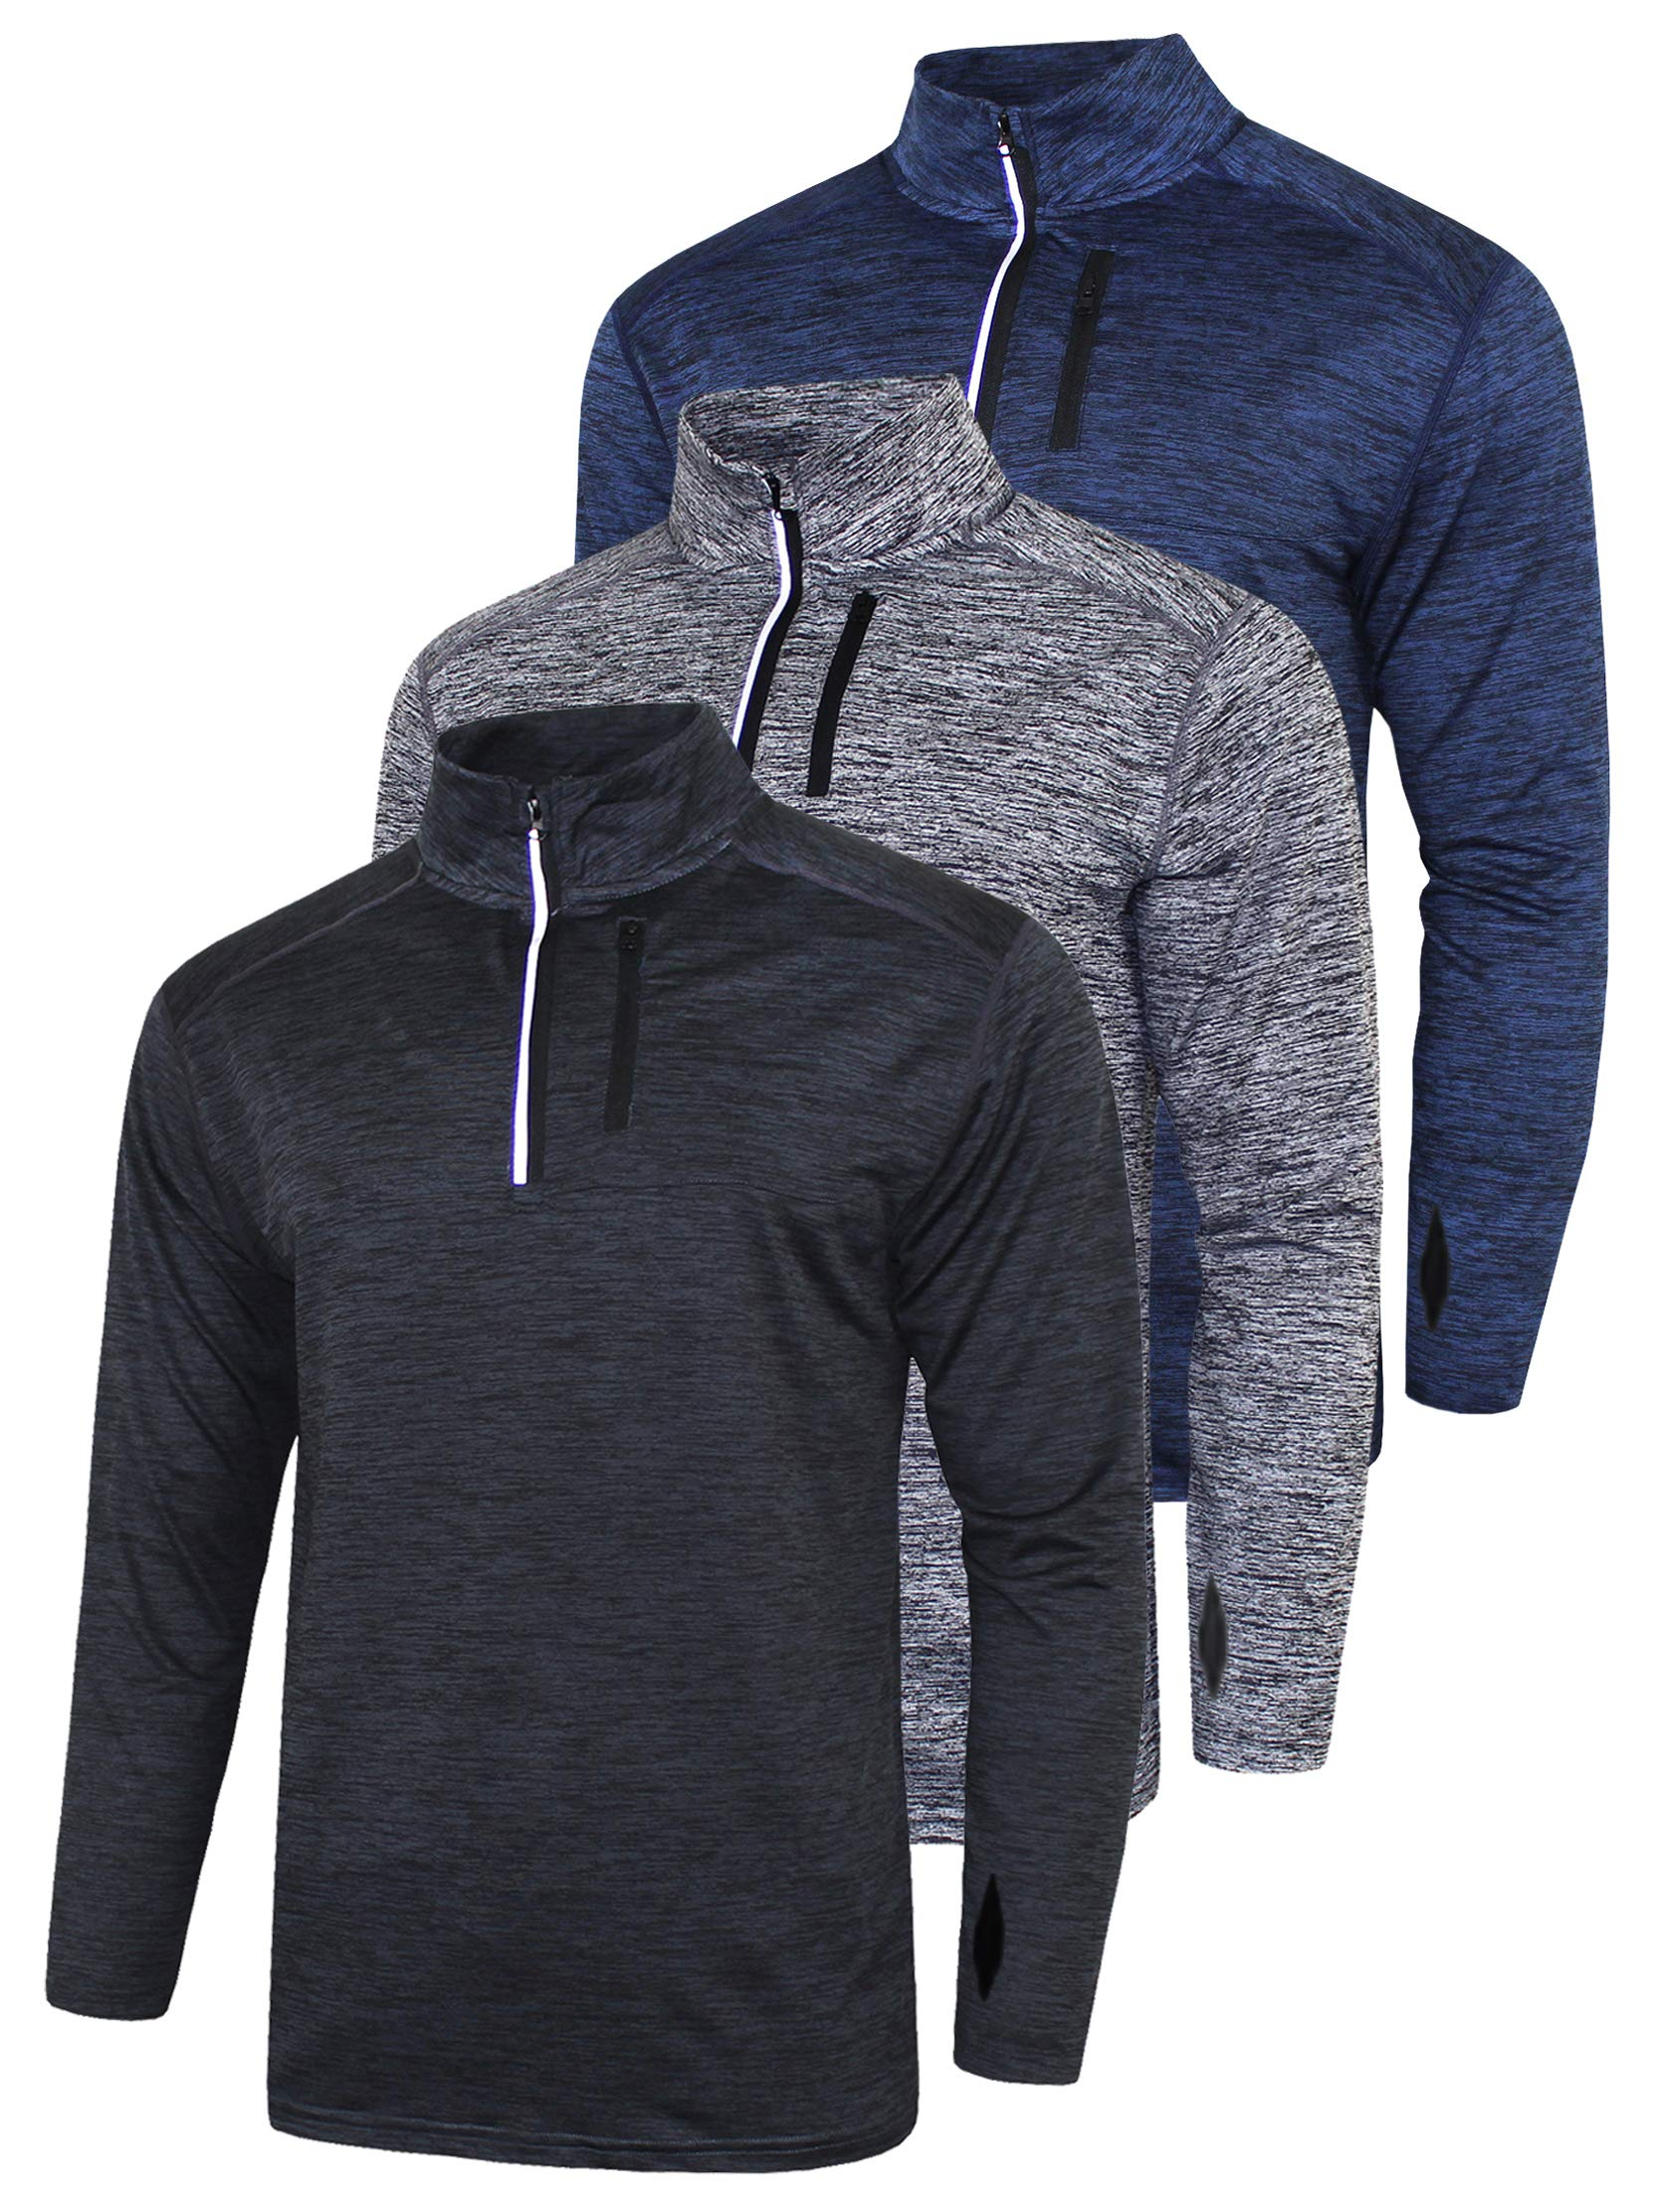 3 Pack Men's Long Sleeve Active Quarter Zip Quick Dry Pullover - Athletic Running Cycling Gym Top Shirts Bulk Bundle (Edition 1, XX-Large) by Liberty Imports